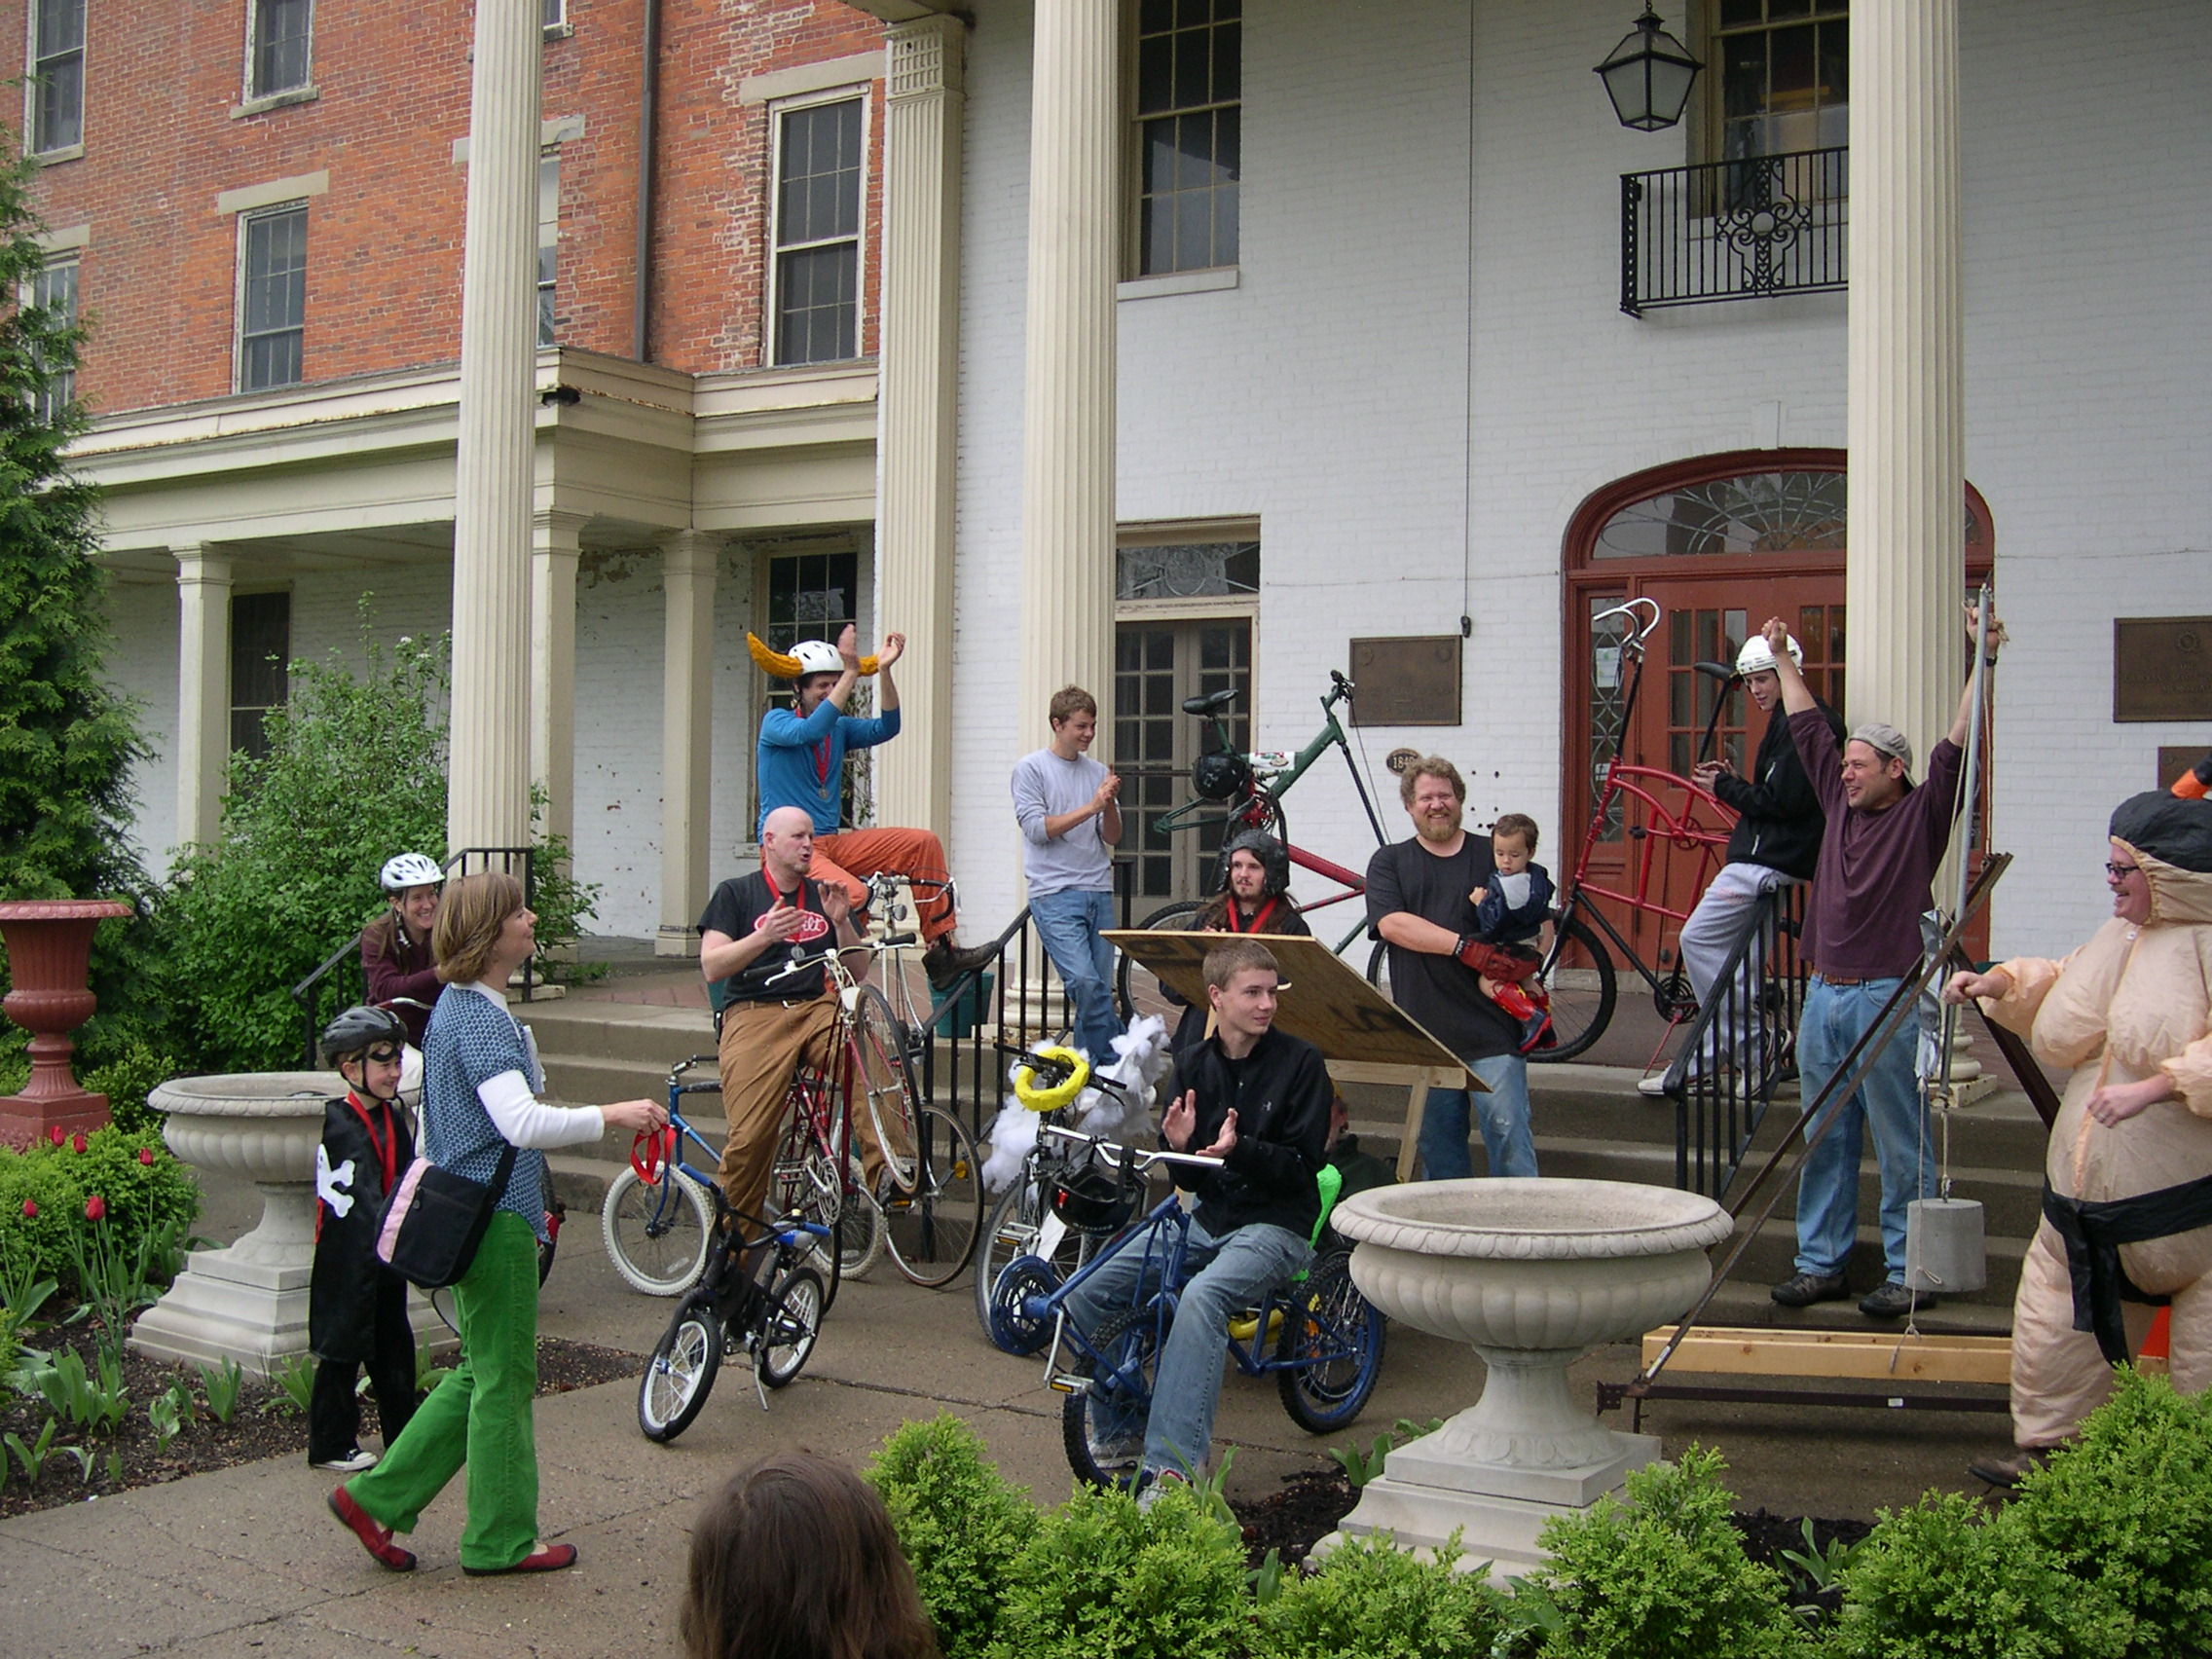 Humble beginnings: the original Kinetic Sculpture Race in 2010...60 people total, racers and viewers!